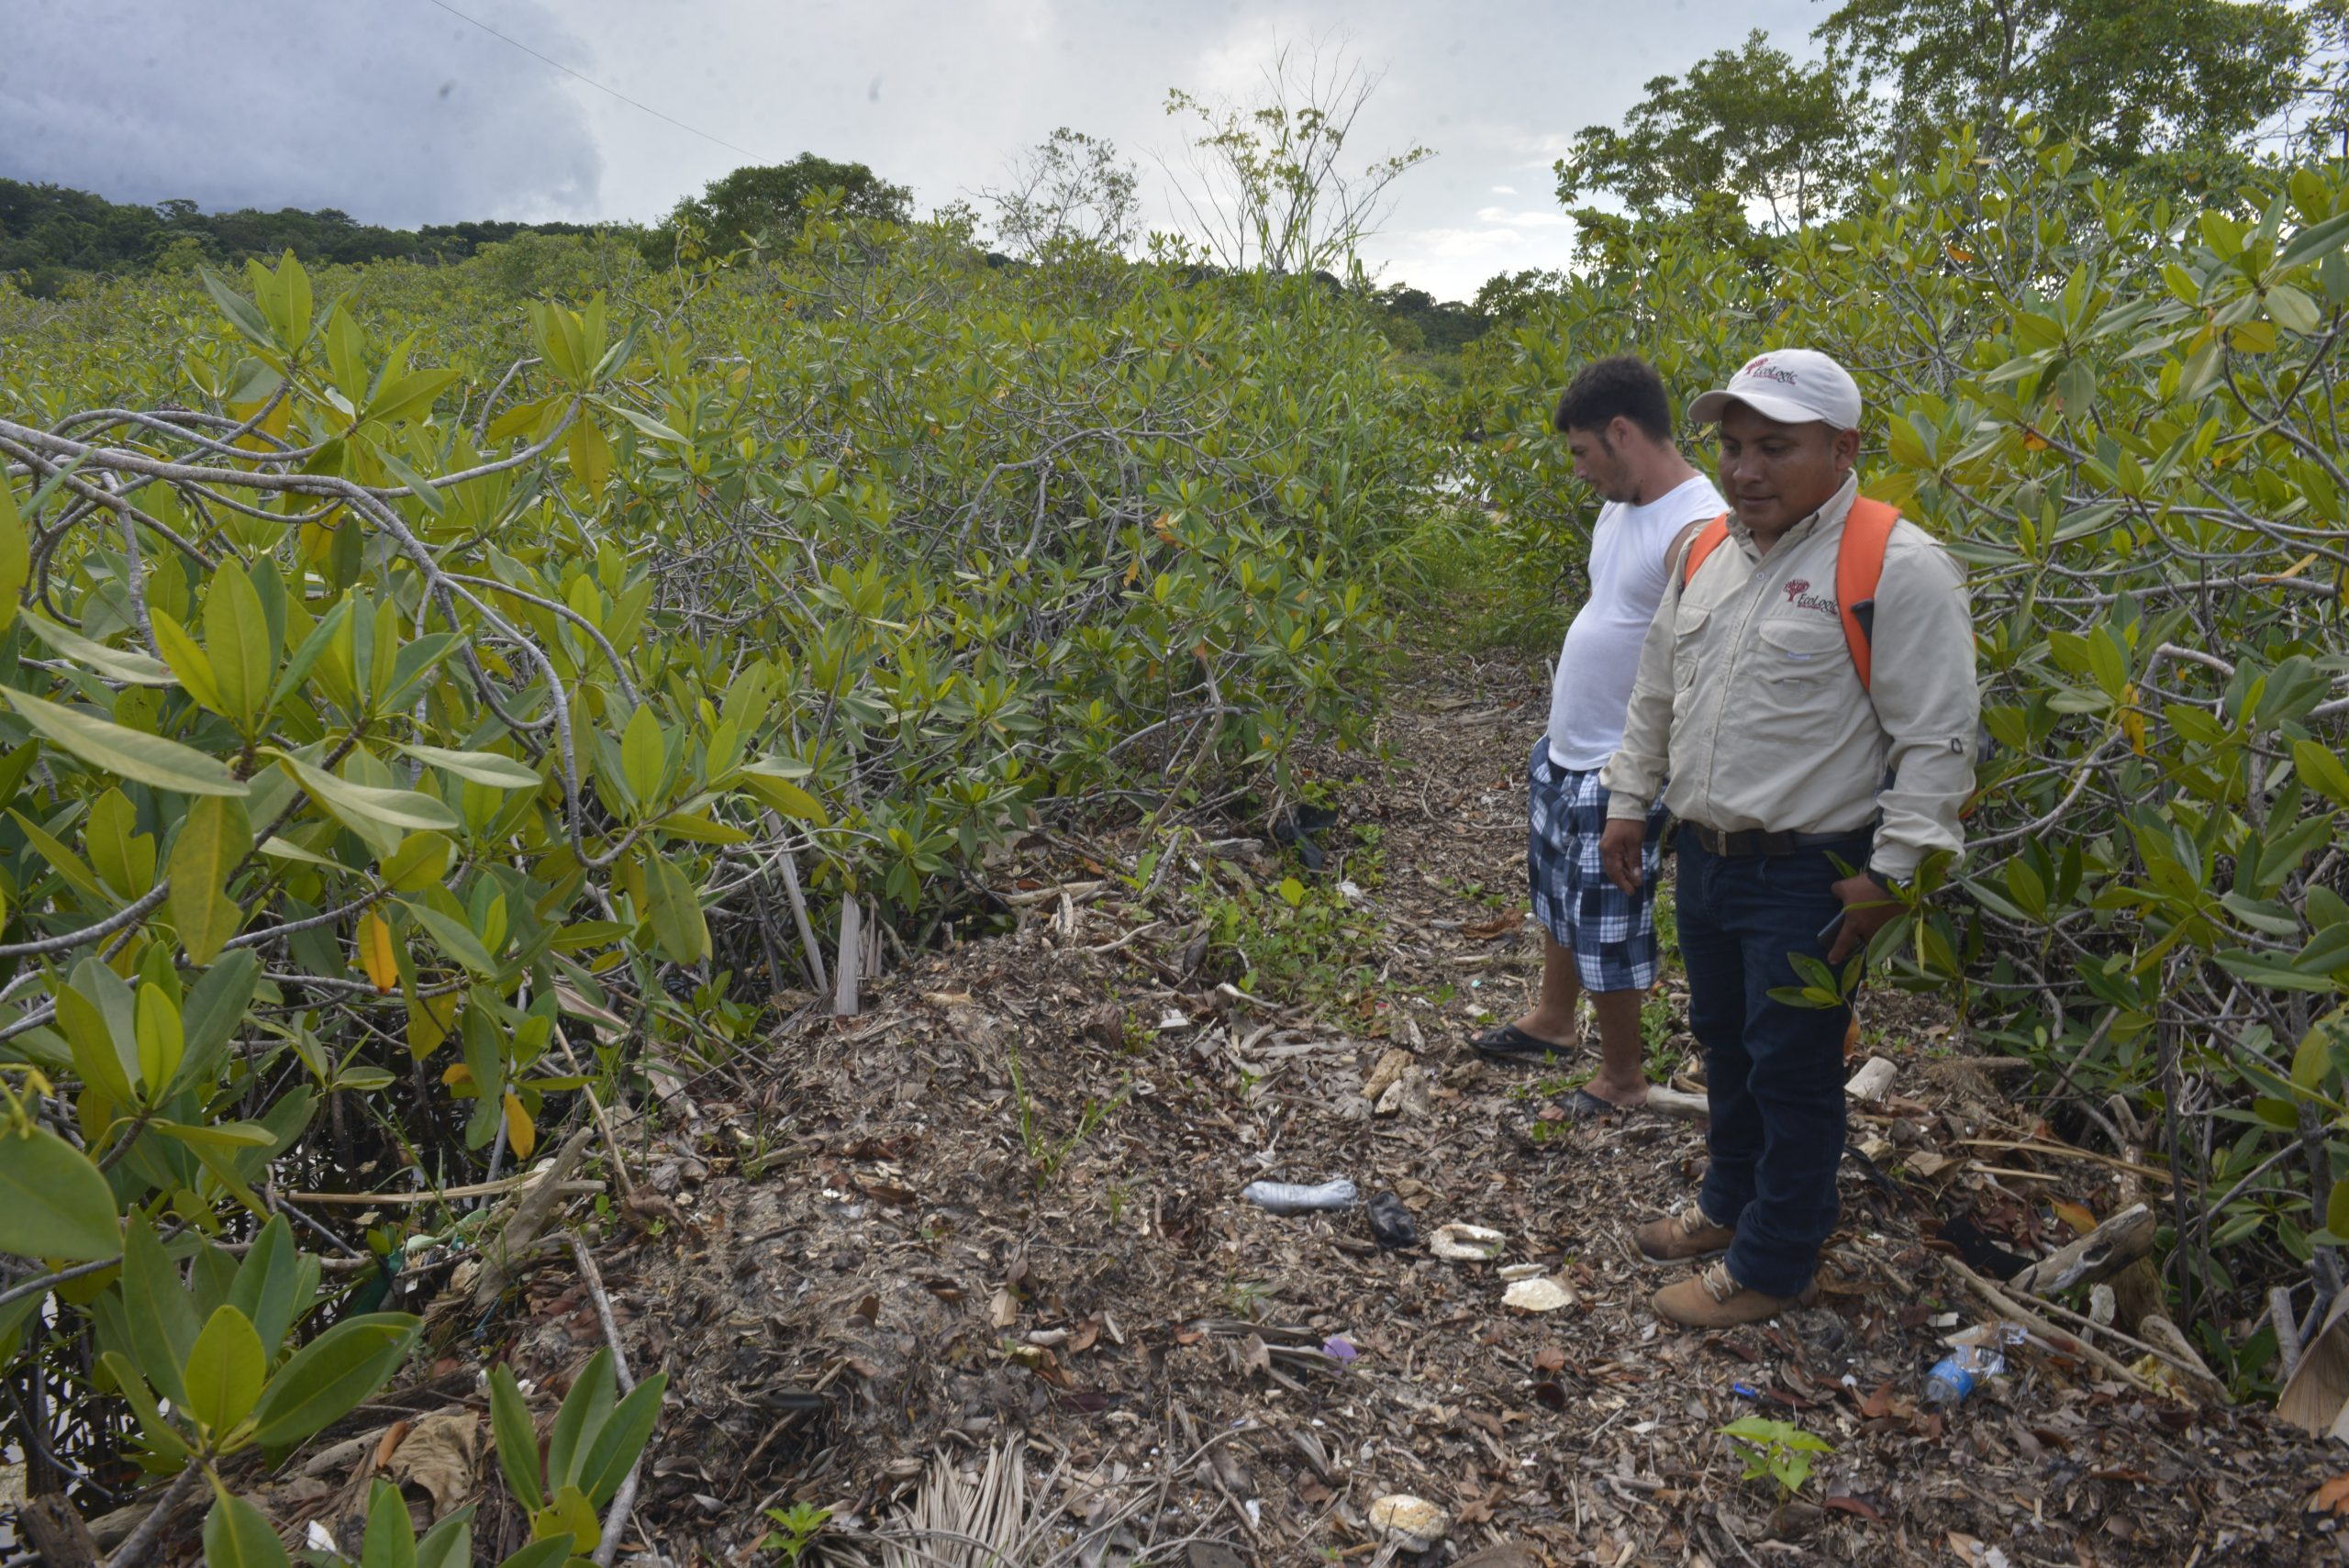 The López family built a trail through the mangroves with the trash they find every morning / Credit: Jesús Alfonso